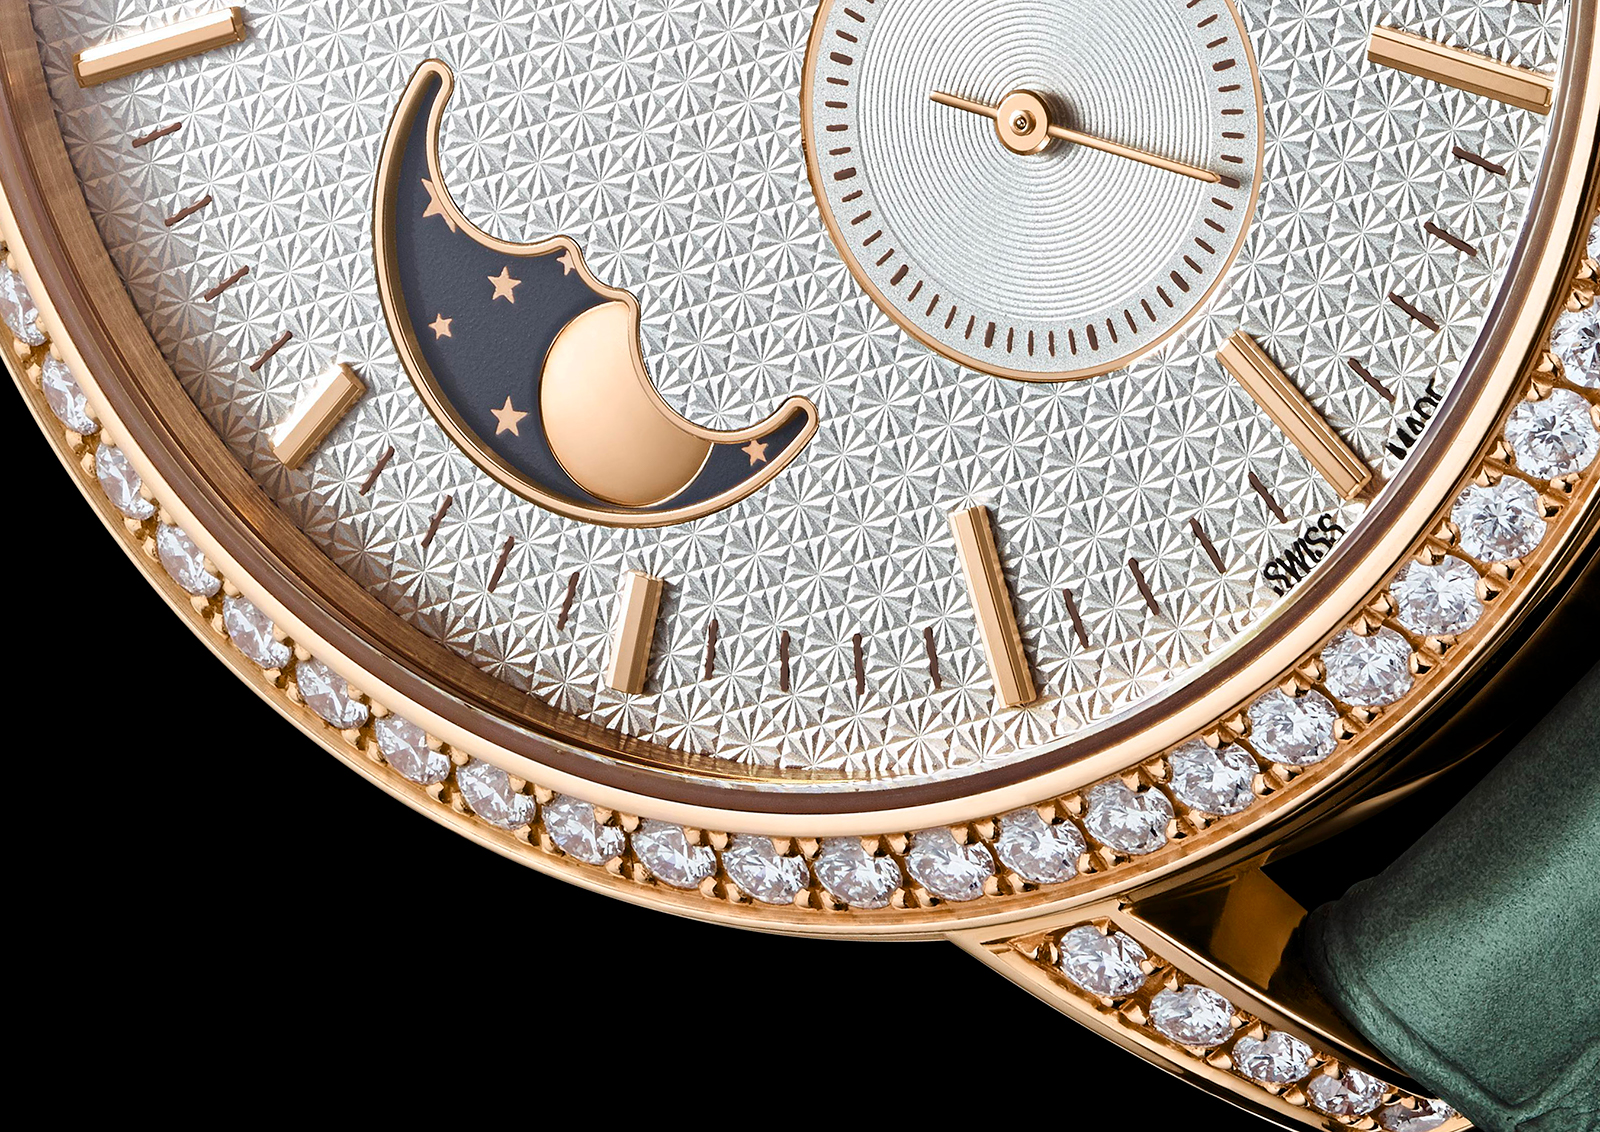 Vacheron Constantin Traditionnelle Moonphase dial close up